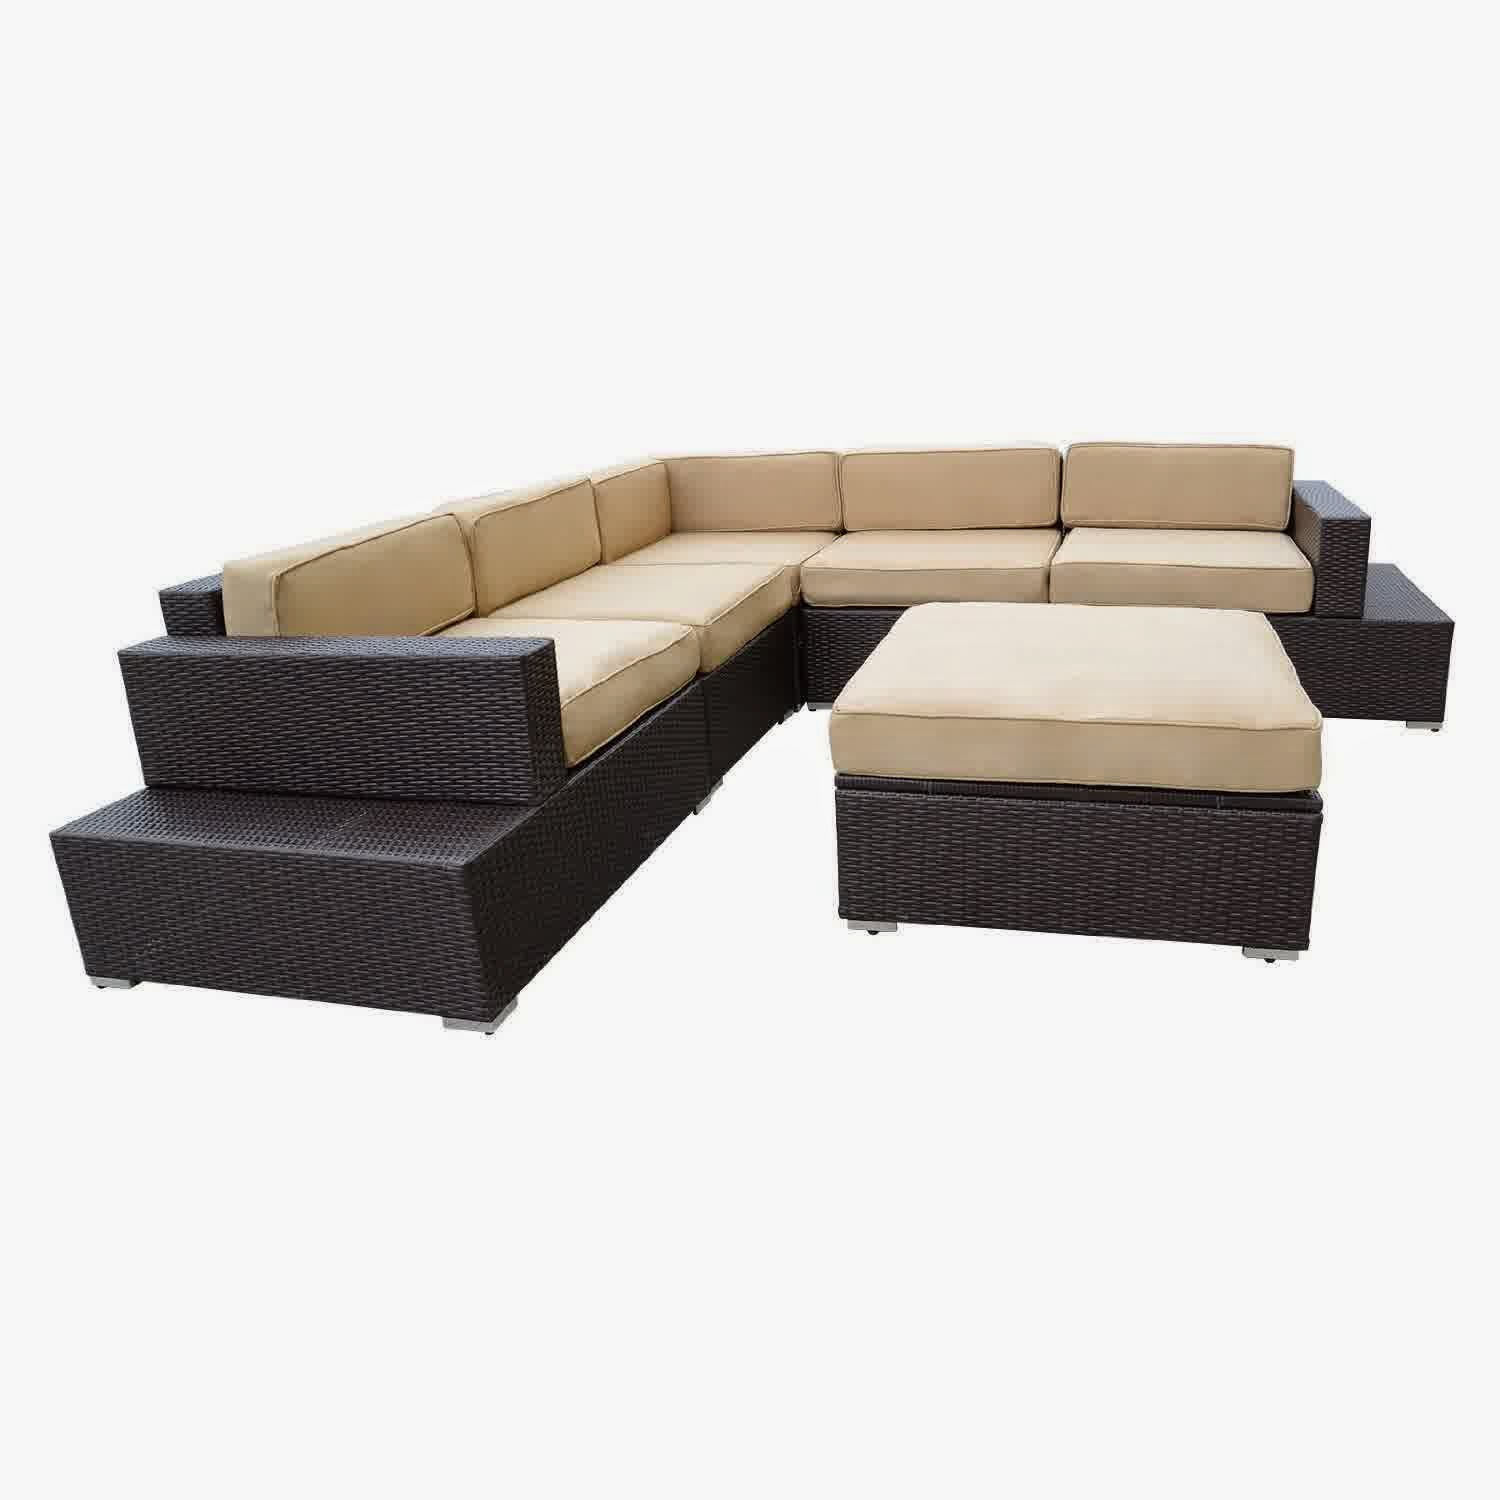 rattan outdoor sofa cheap bed in singapore big sale discount 50 patio wicker